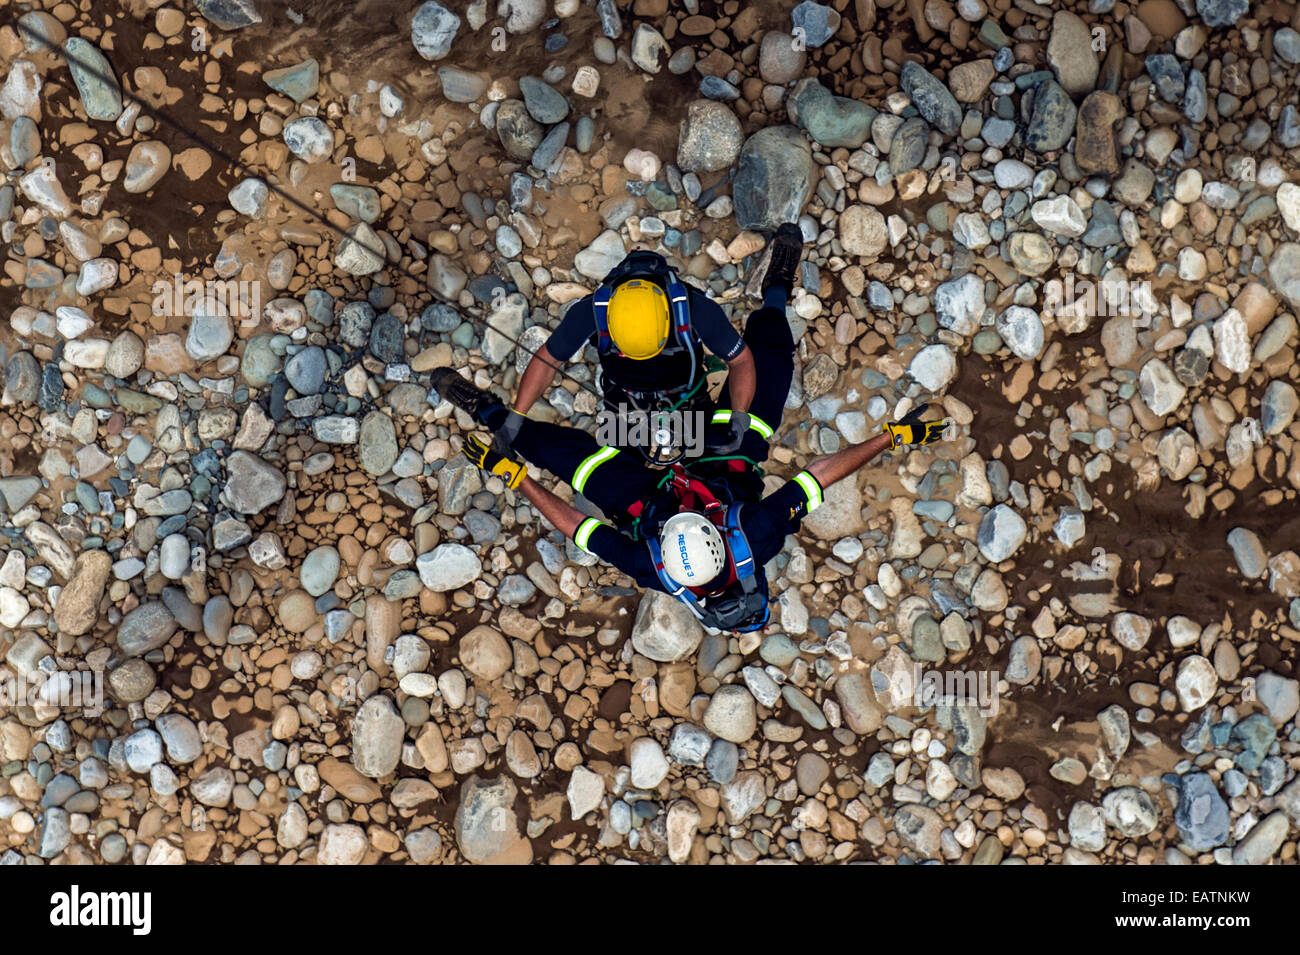 Airforce and police rescue team descends on a winch to a rocky slope. - Stock Image